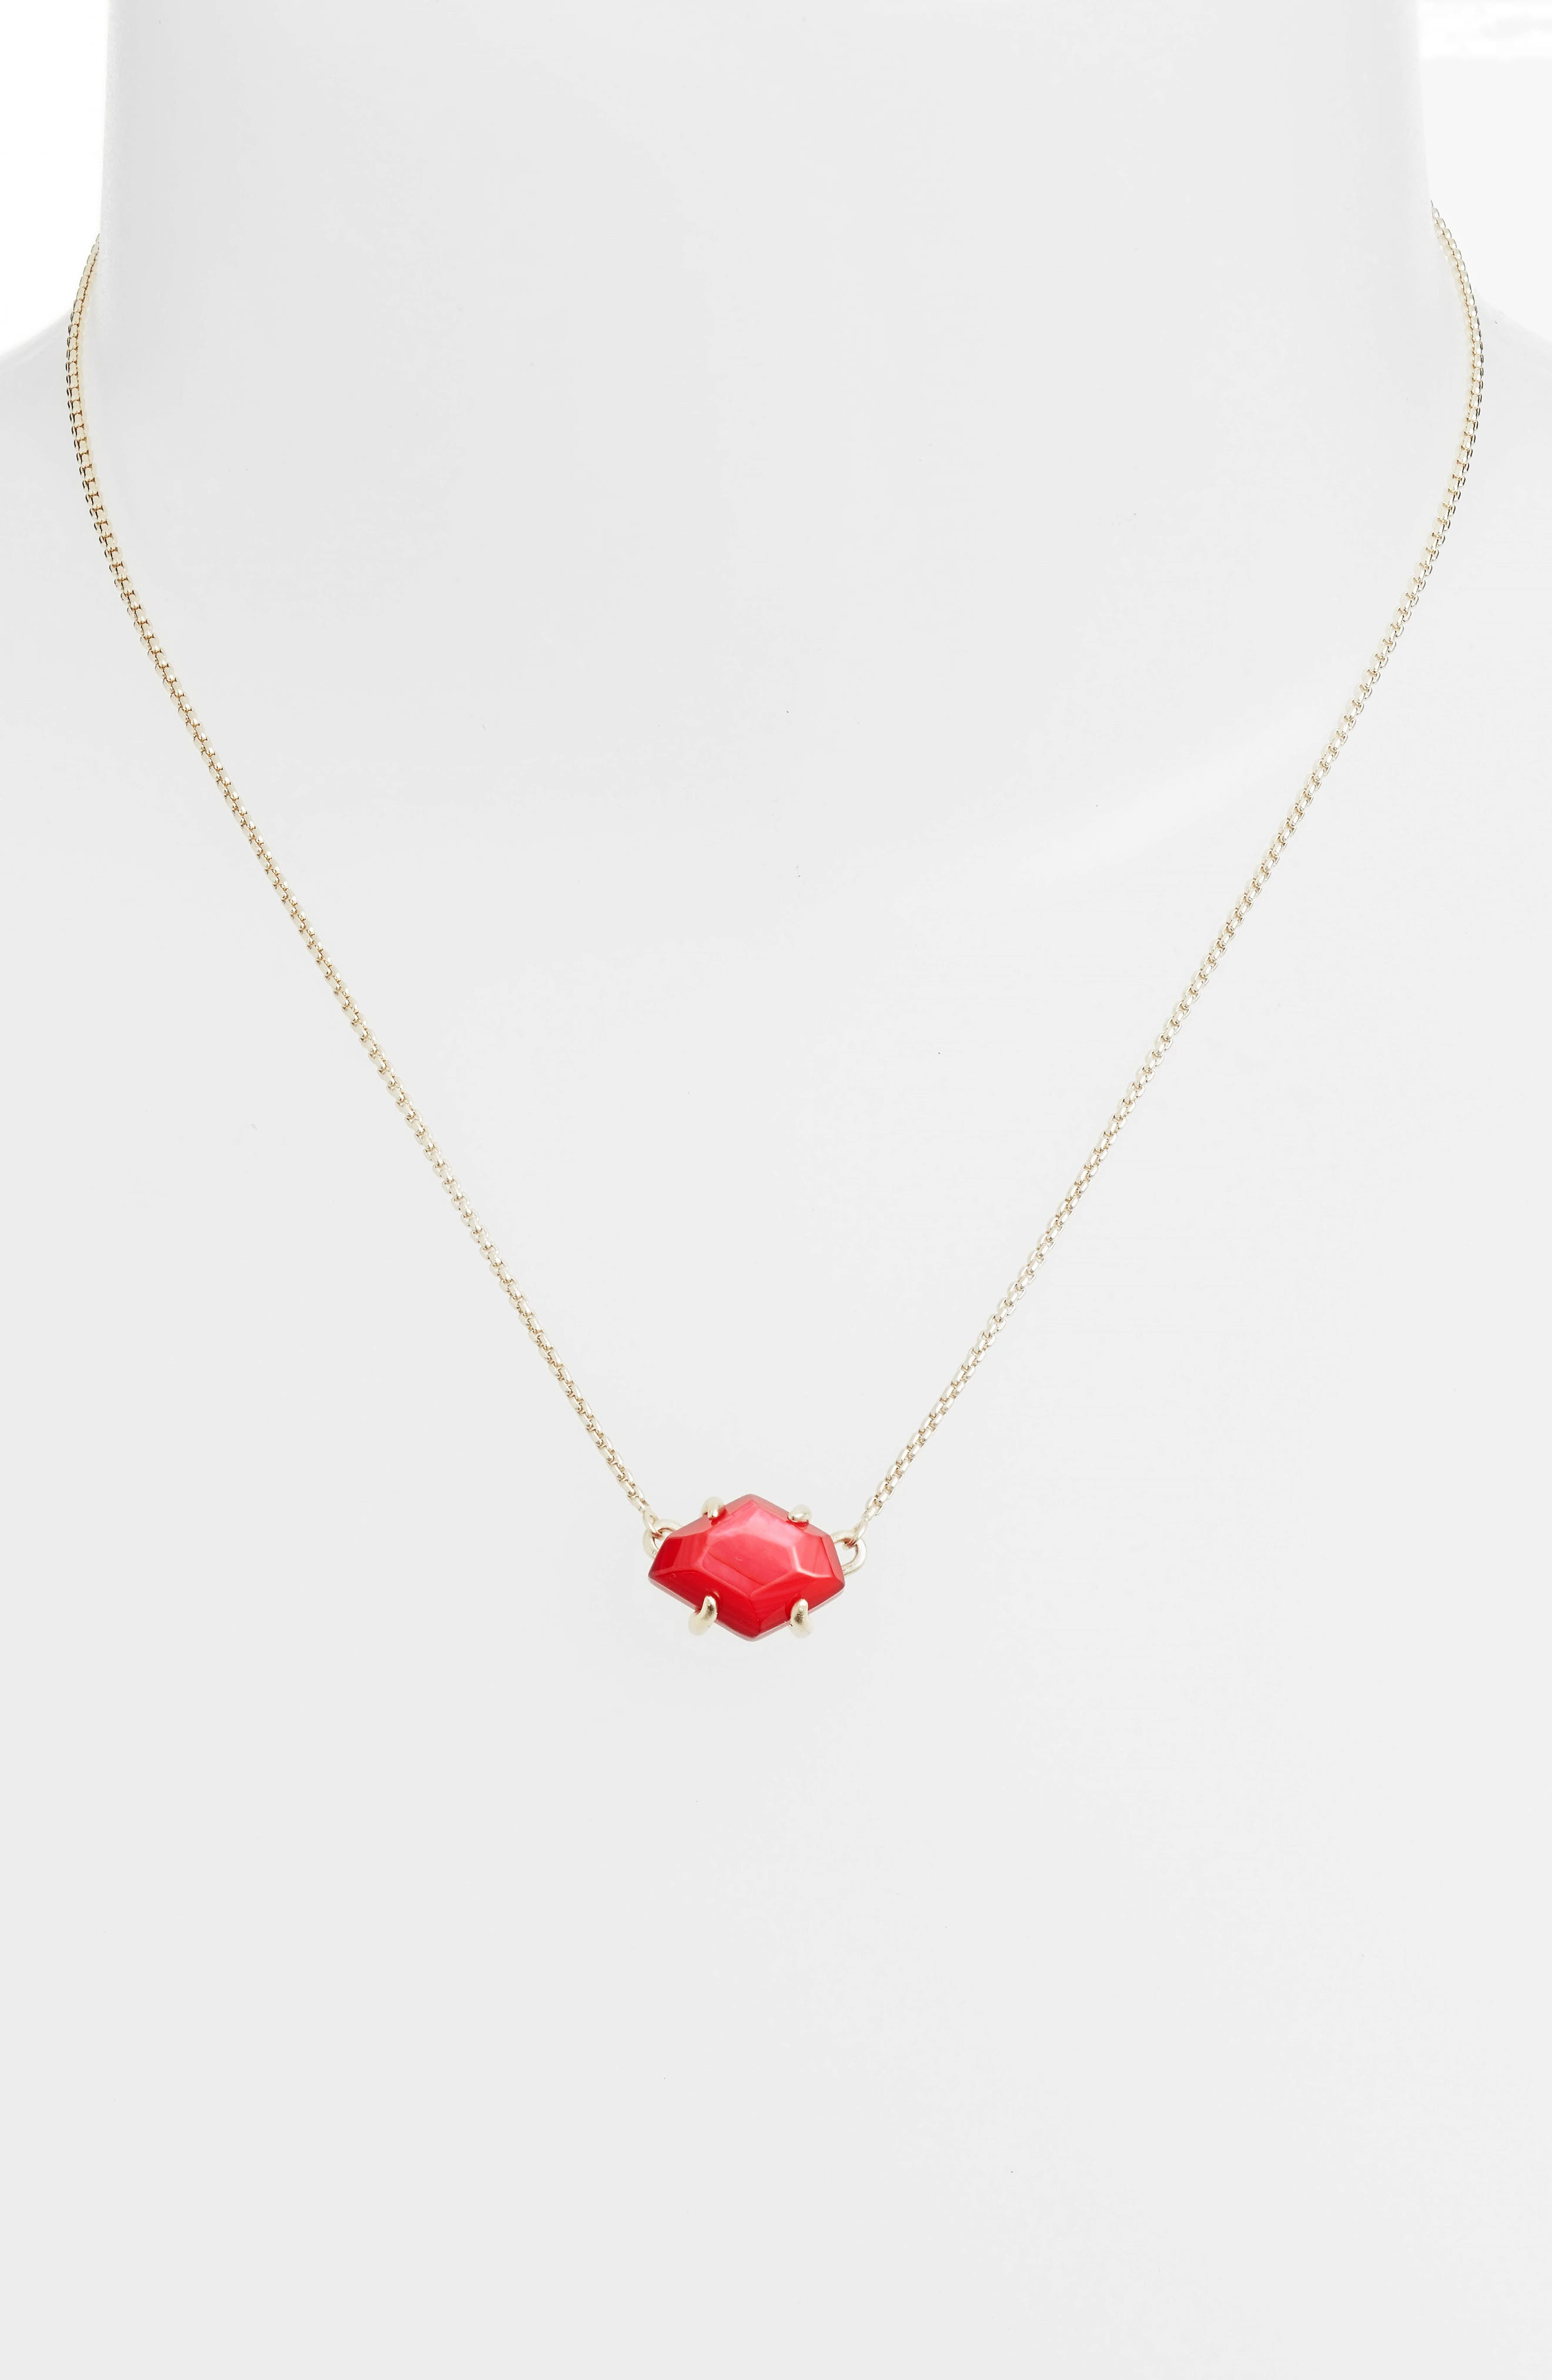 Ethan Pendant Necklace,                             Alternate thumbnail 2, color,                             Red Mop/ Gold